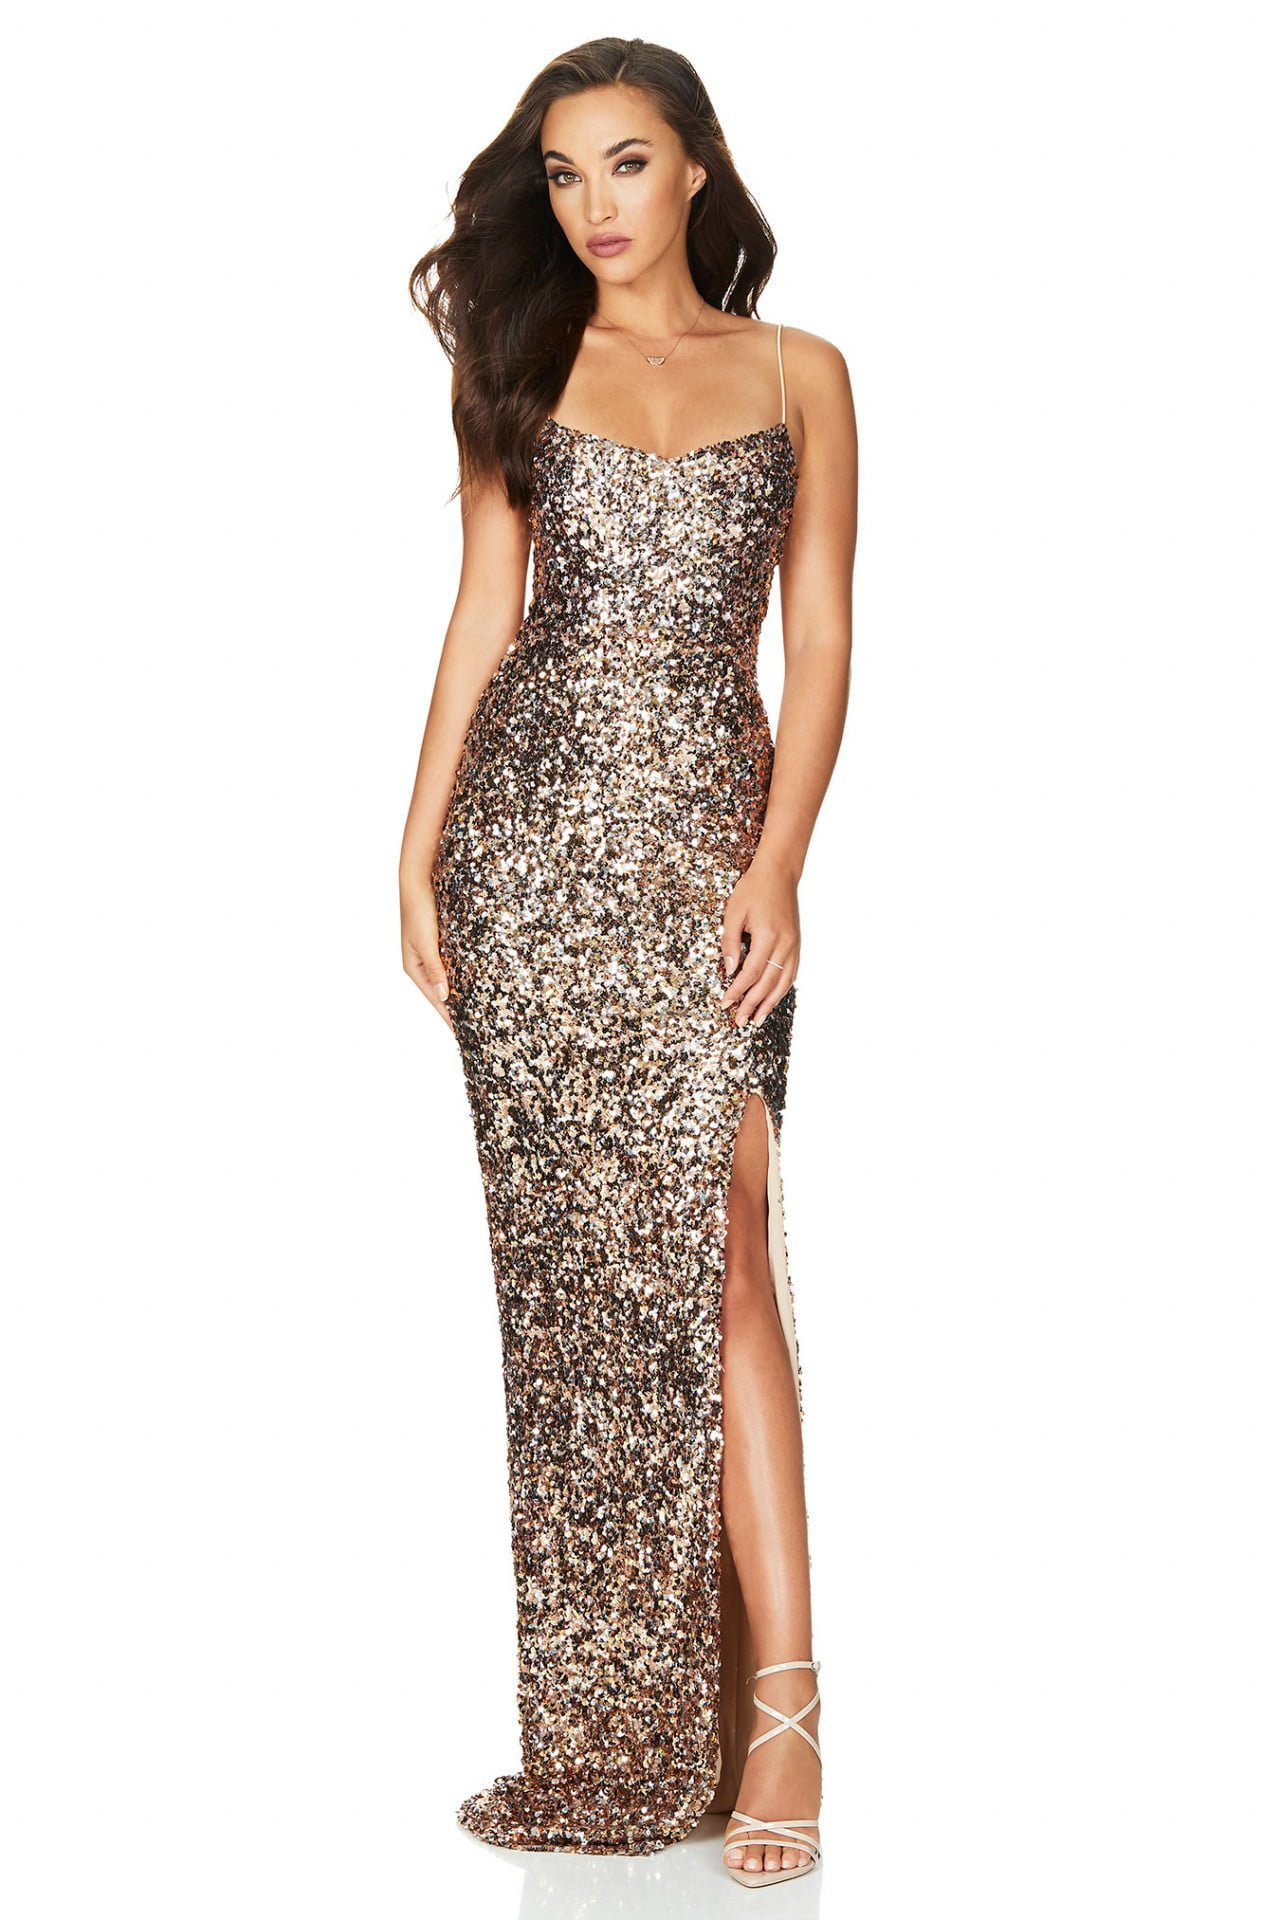 Nookie Confetti Gown Floor Length, Maxi Gold